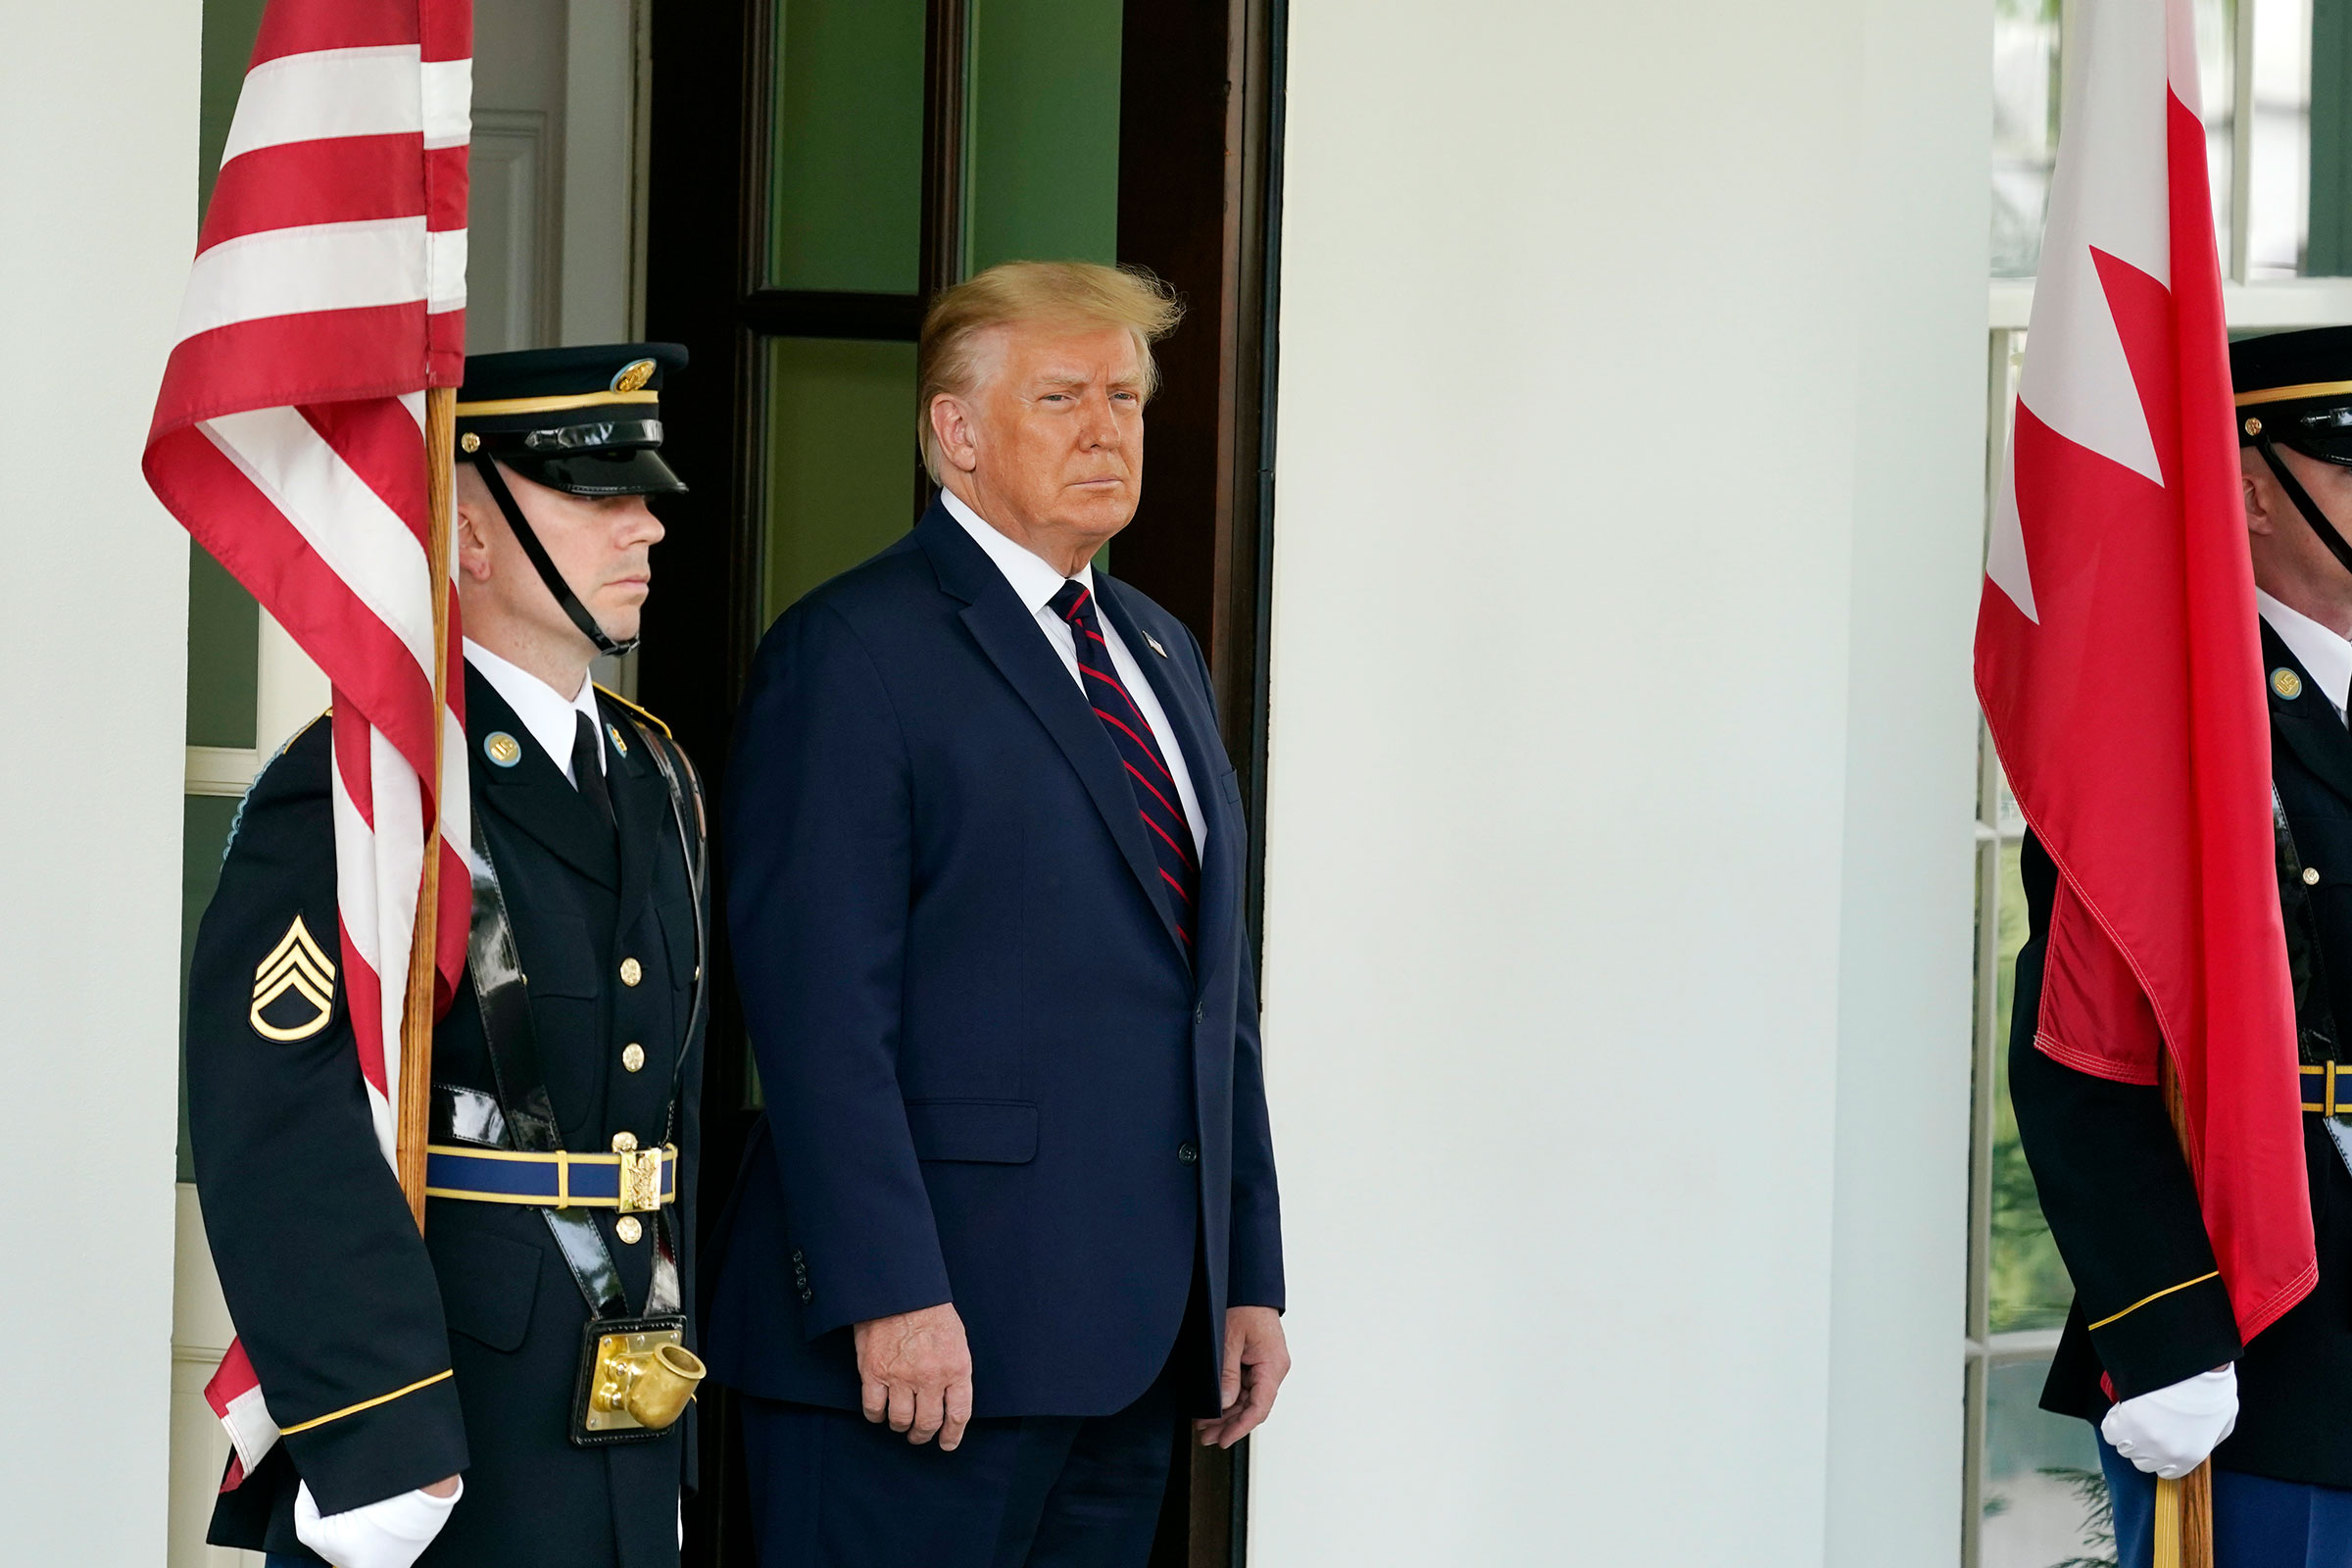 President Donald Trump waits to greet the Bahrain Foreign Minister Khalid bin Ahmed Al Khalifa at the White House, on Sept. 15, 2020, in Washington.